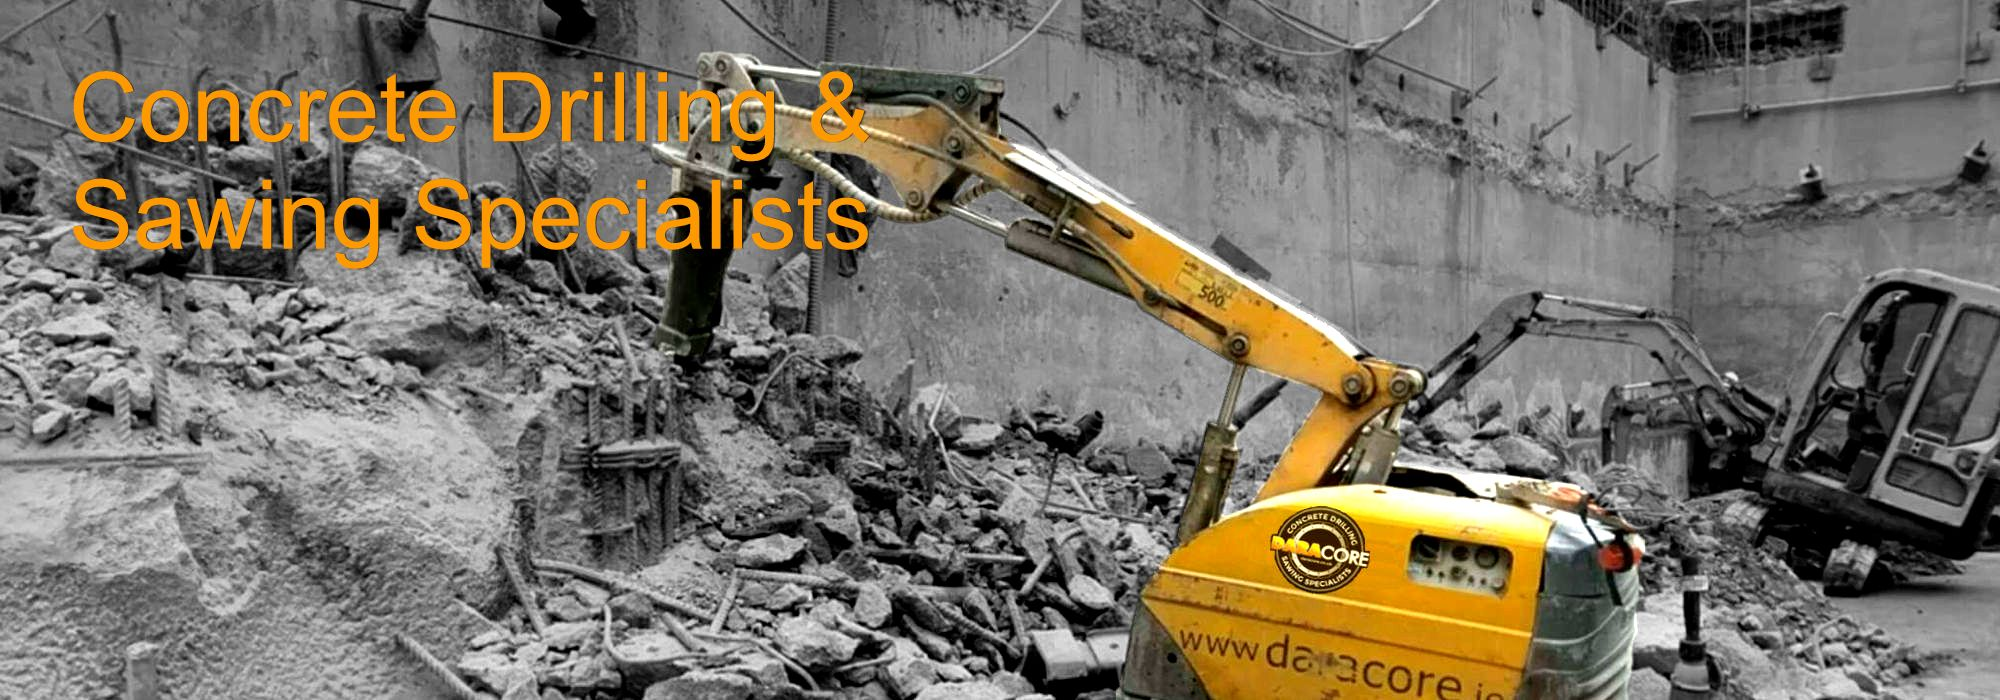 Daracore Ltd, Concrete Drilling & Sawing Specialists, Ireland & UK